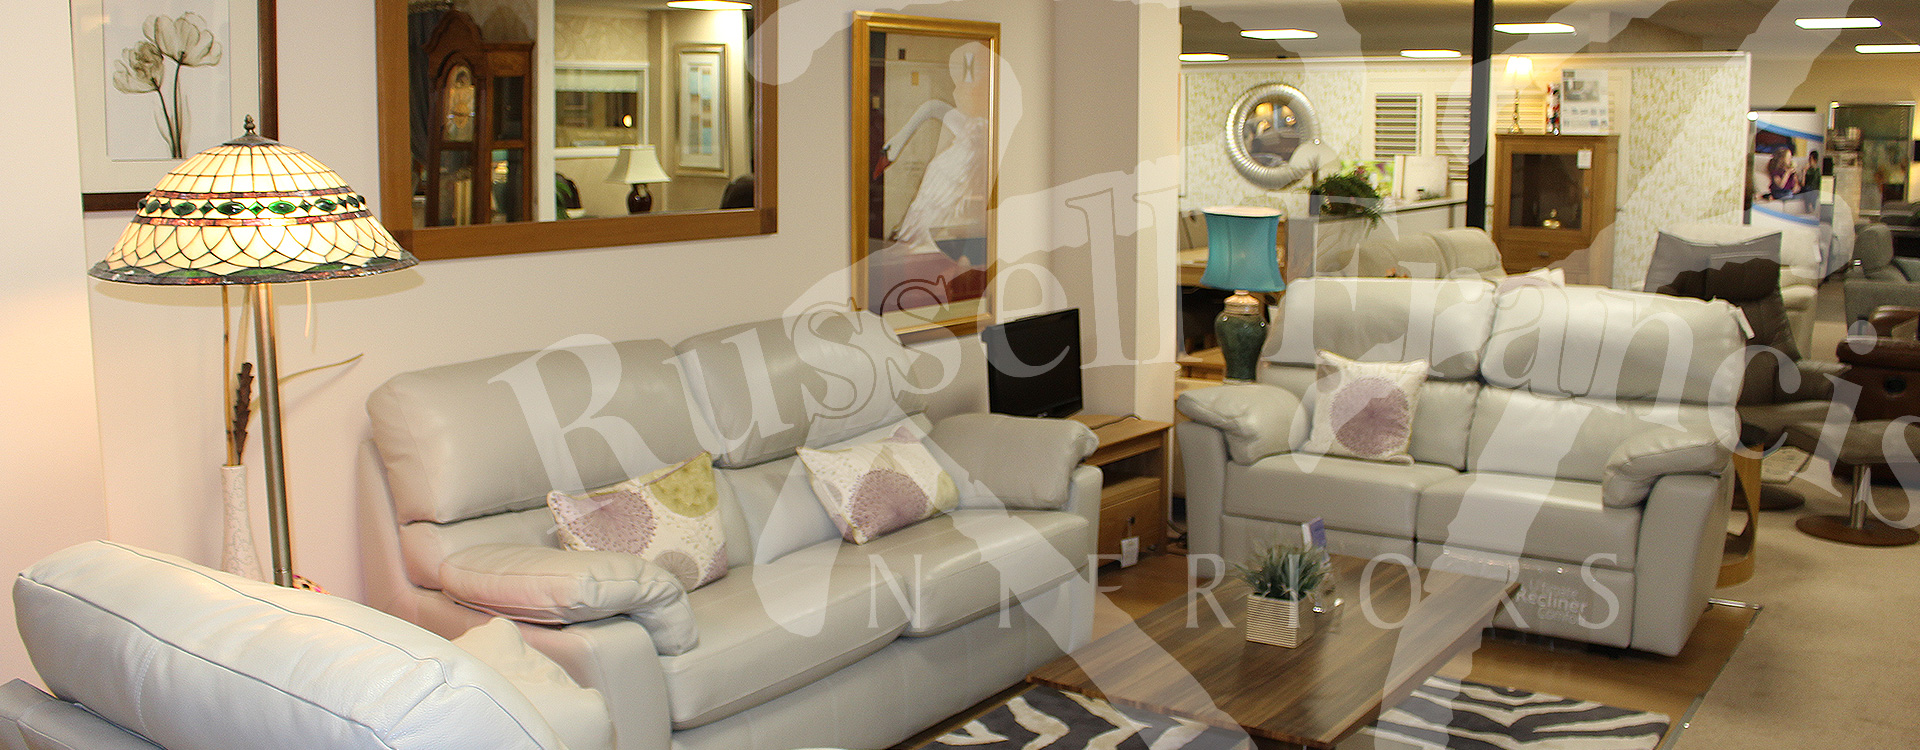 Russell Francis Interiors Nuneaton 39 S Premier Furniture Store